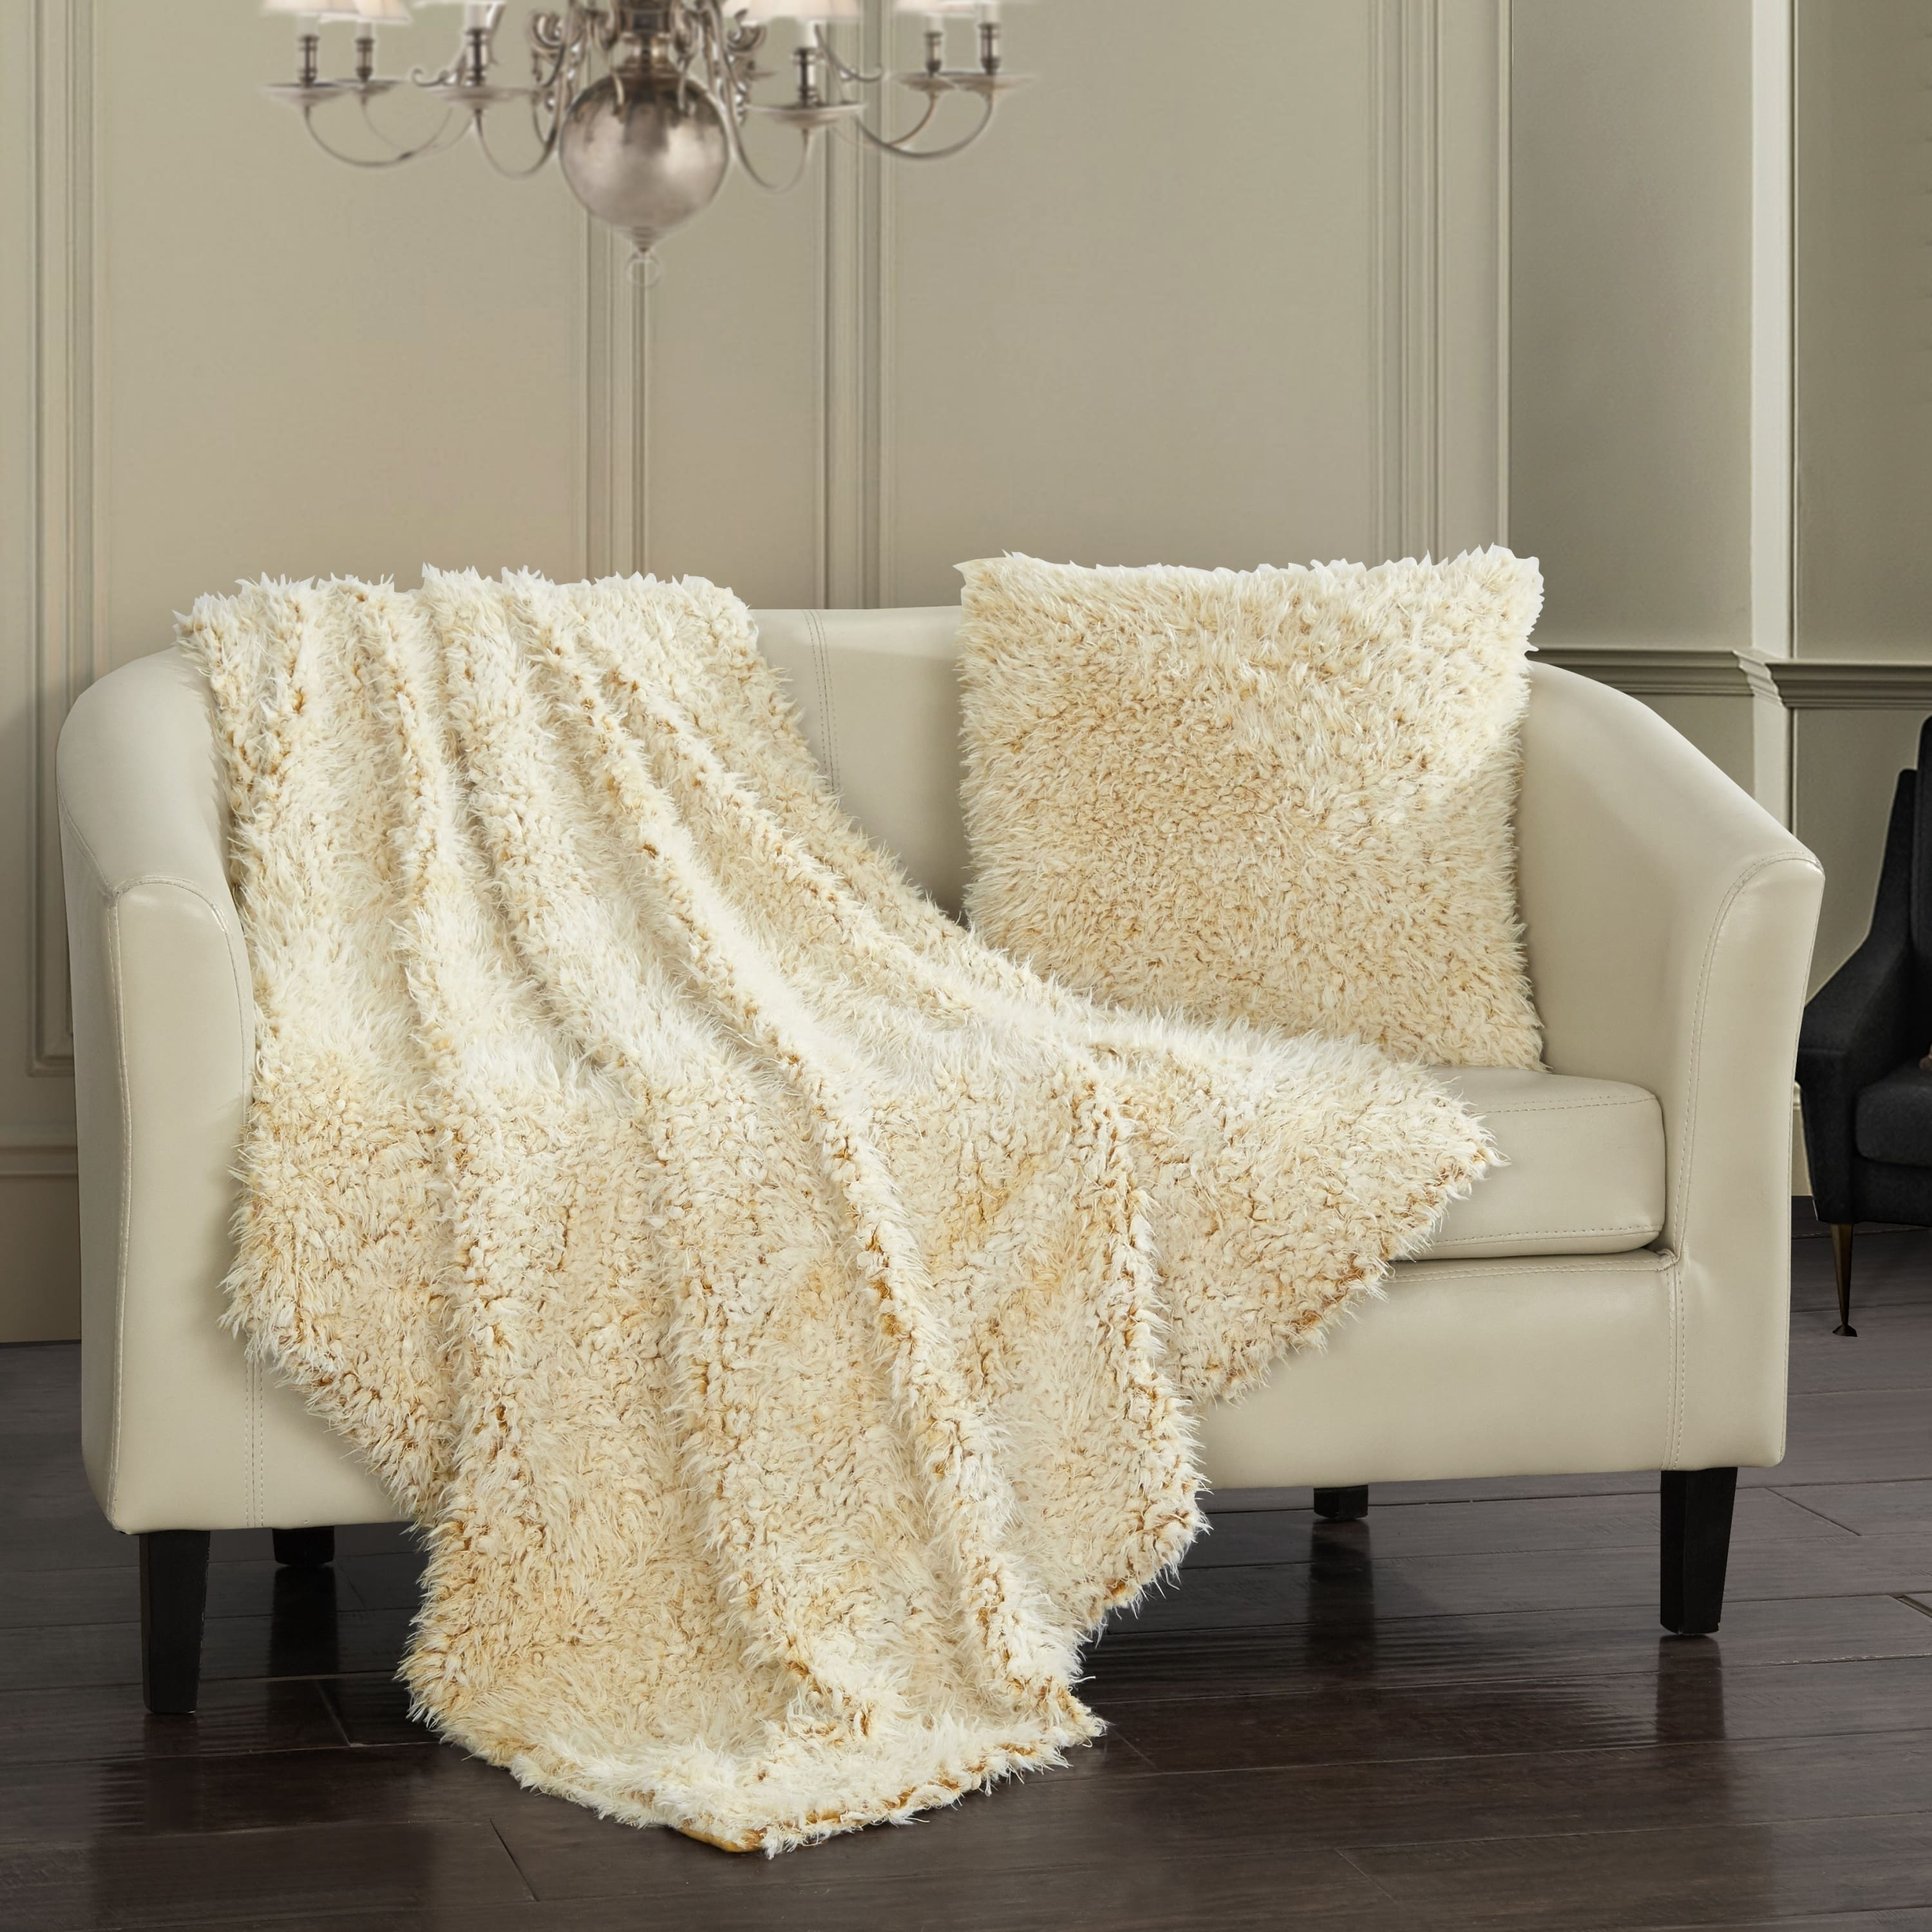 Blankets Amp Throws Find Great Bedding Deals Shopping At